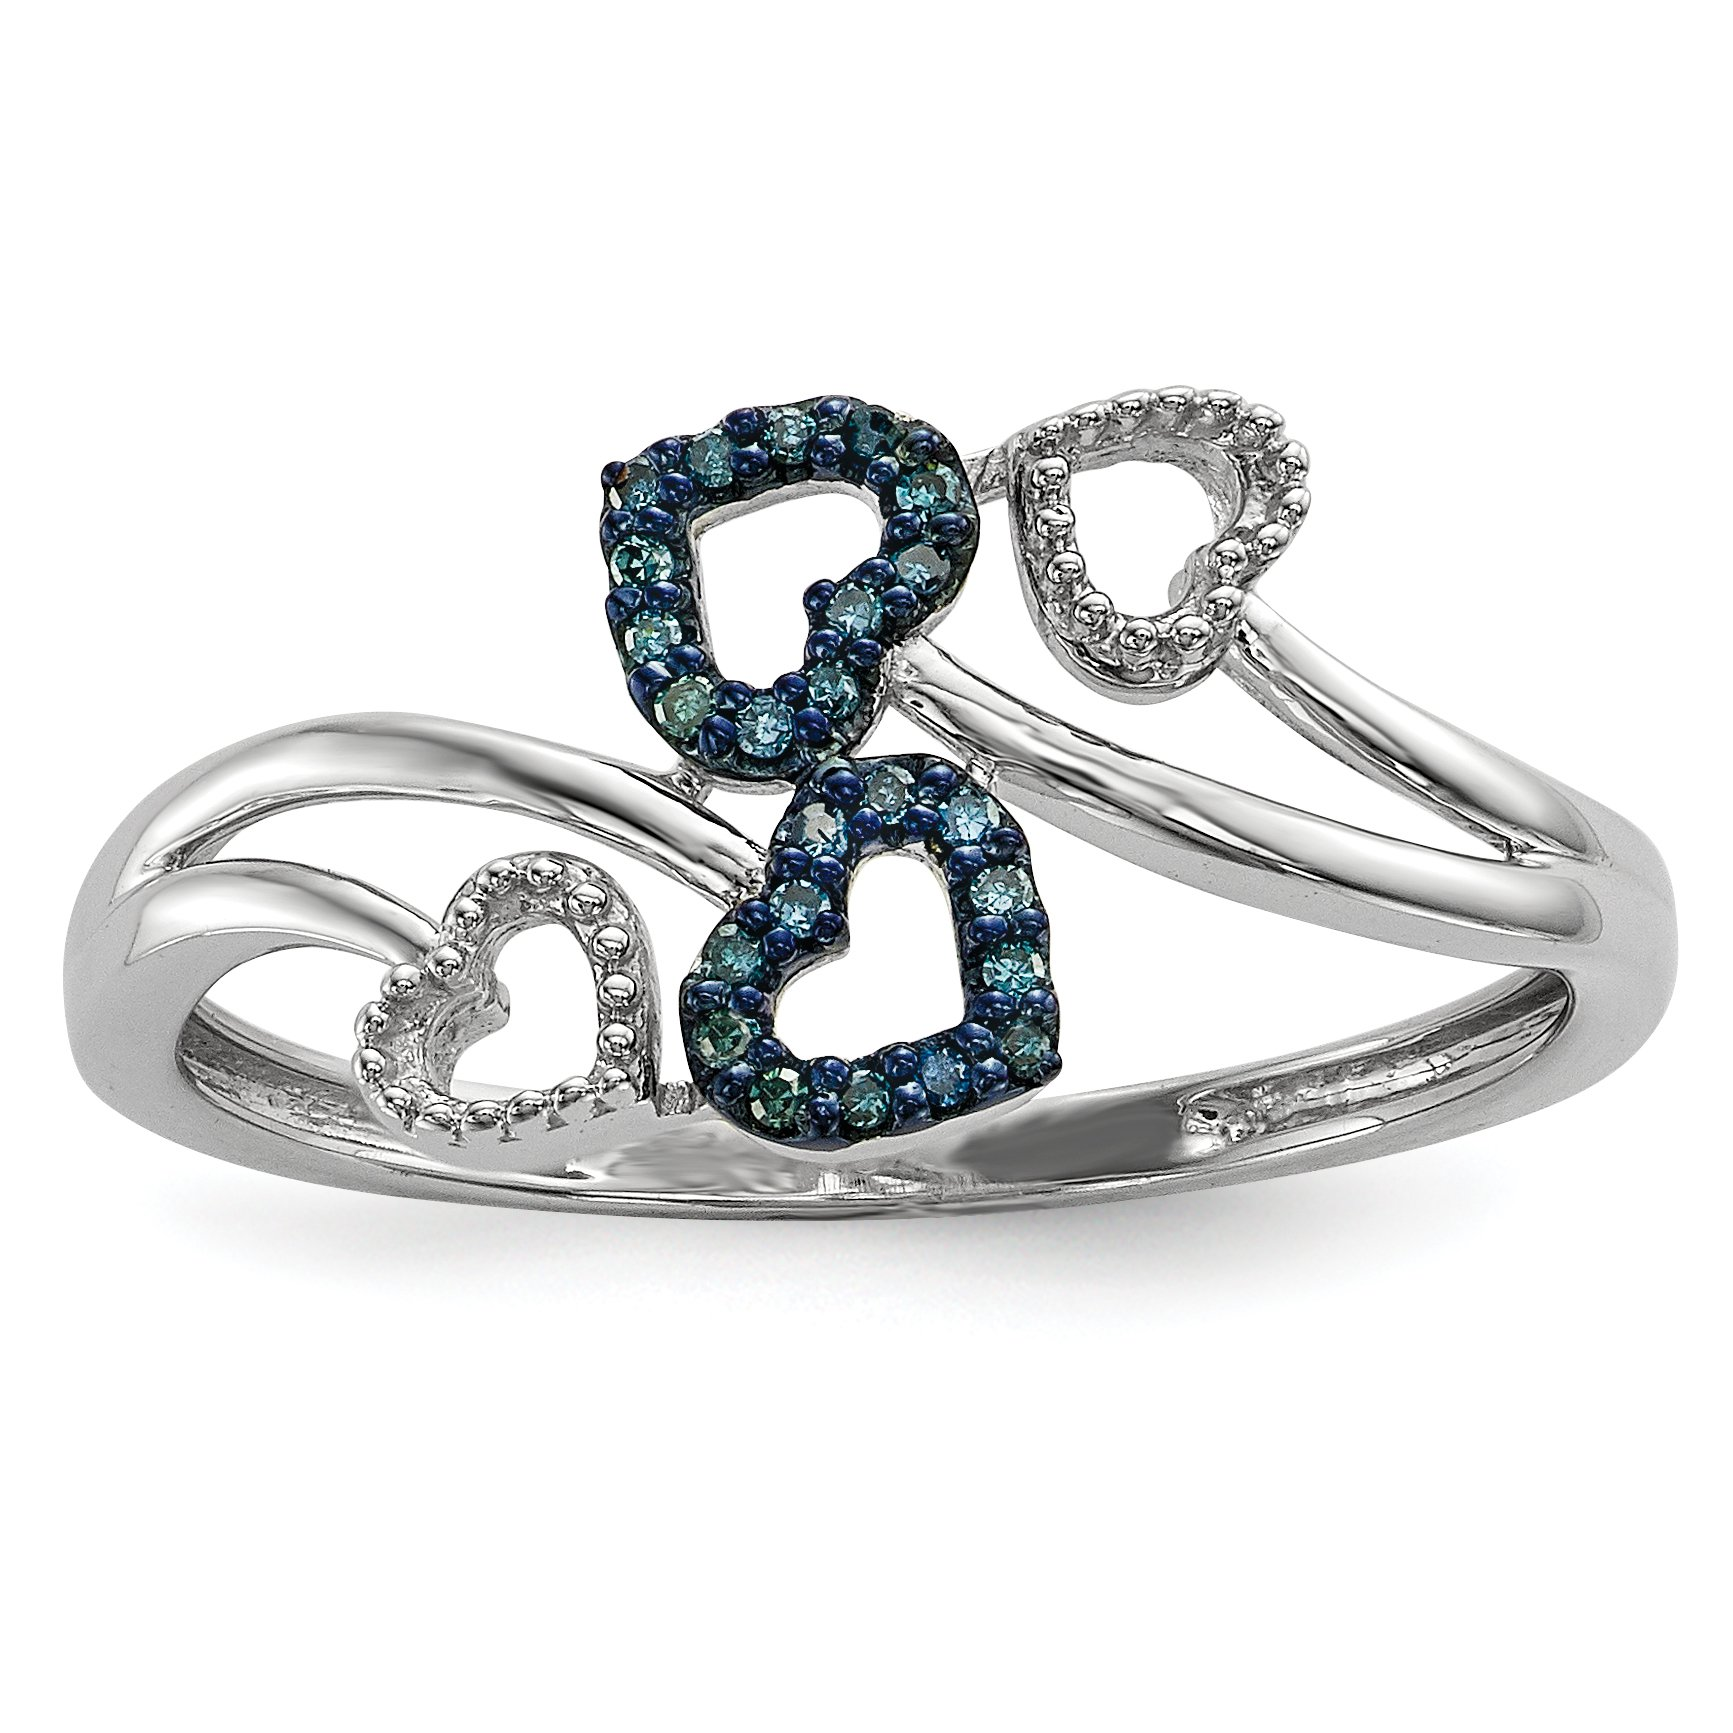 ICE CARATS 925 Sterling Silver Blue Diamond Multi Heart Band Ring Size 7.00 S/love Fine Jewelry Gift For Women Heart